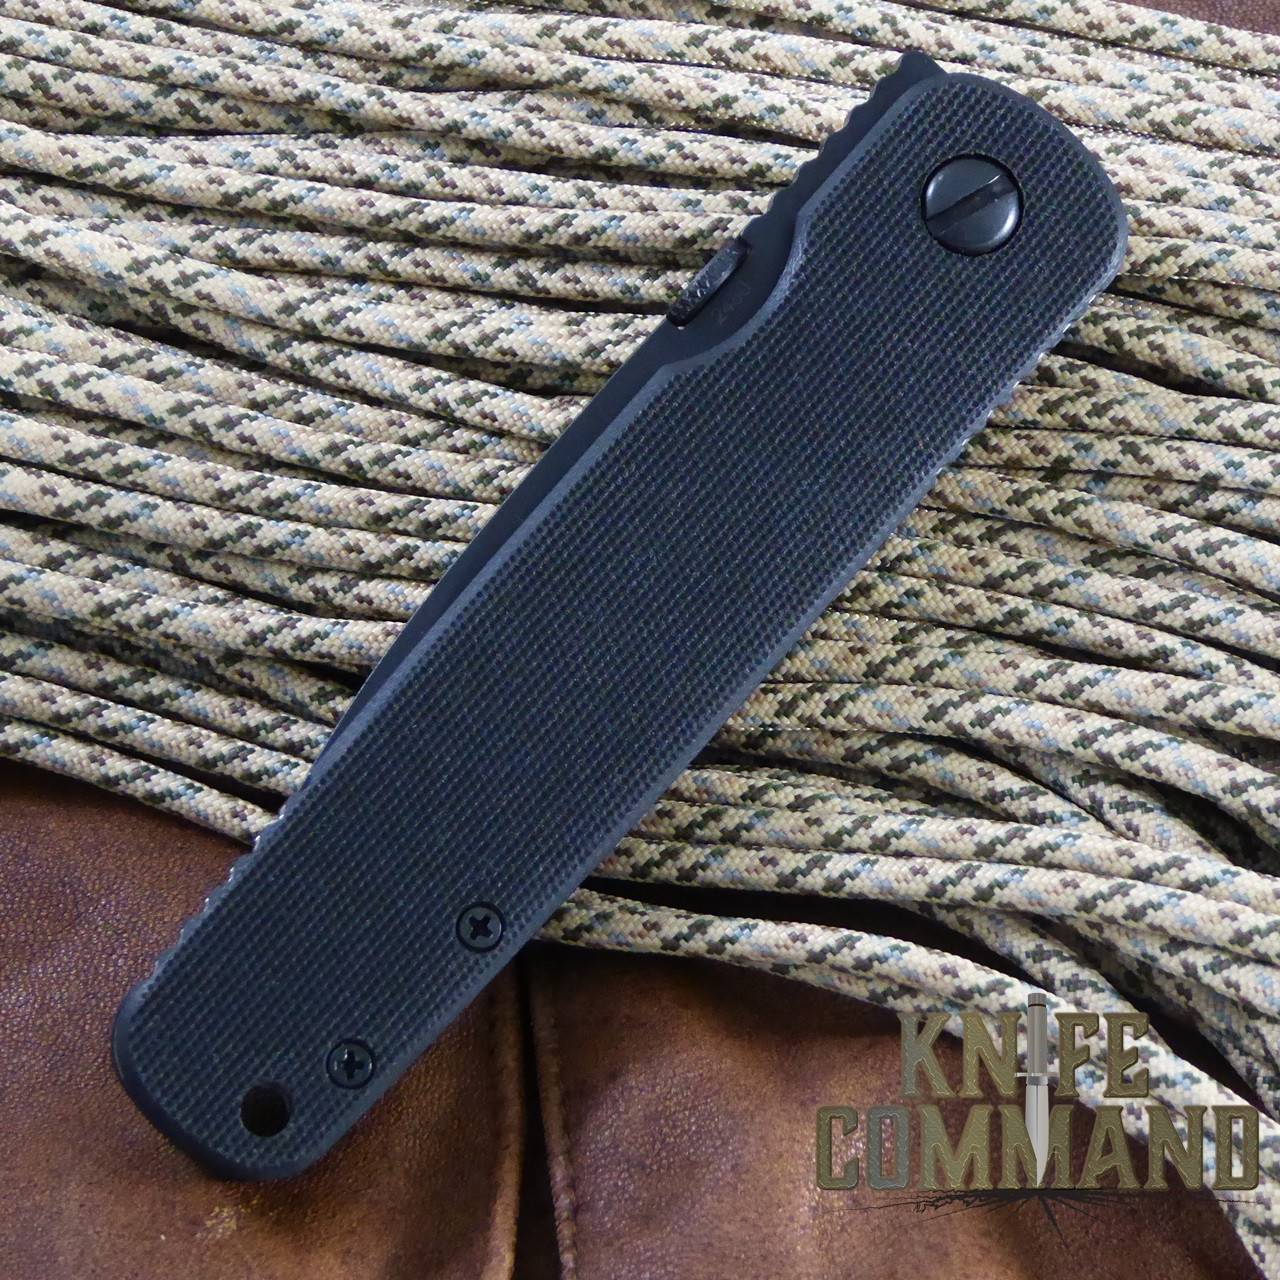 Emerson A100 BT Tactical Folding Knife 154CM.  Simple and strong.